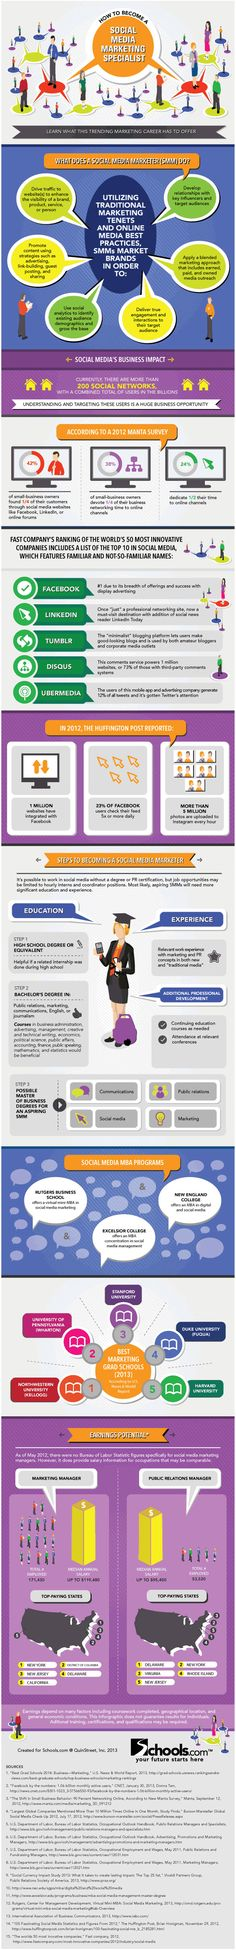 How to Become a Social Media #Marketing Expert? #howto #tips #infographic #socialmedia #education #Facebook #Twitter #LinkedIn #Tumblr